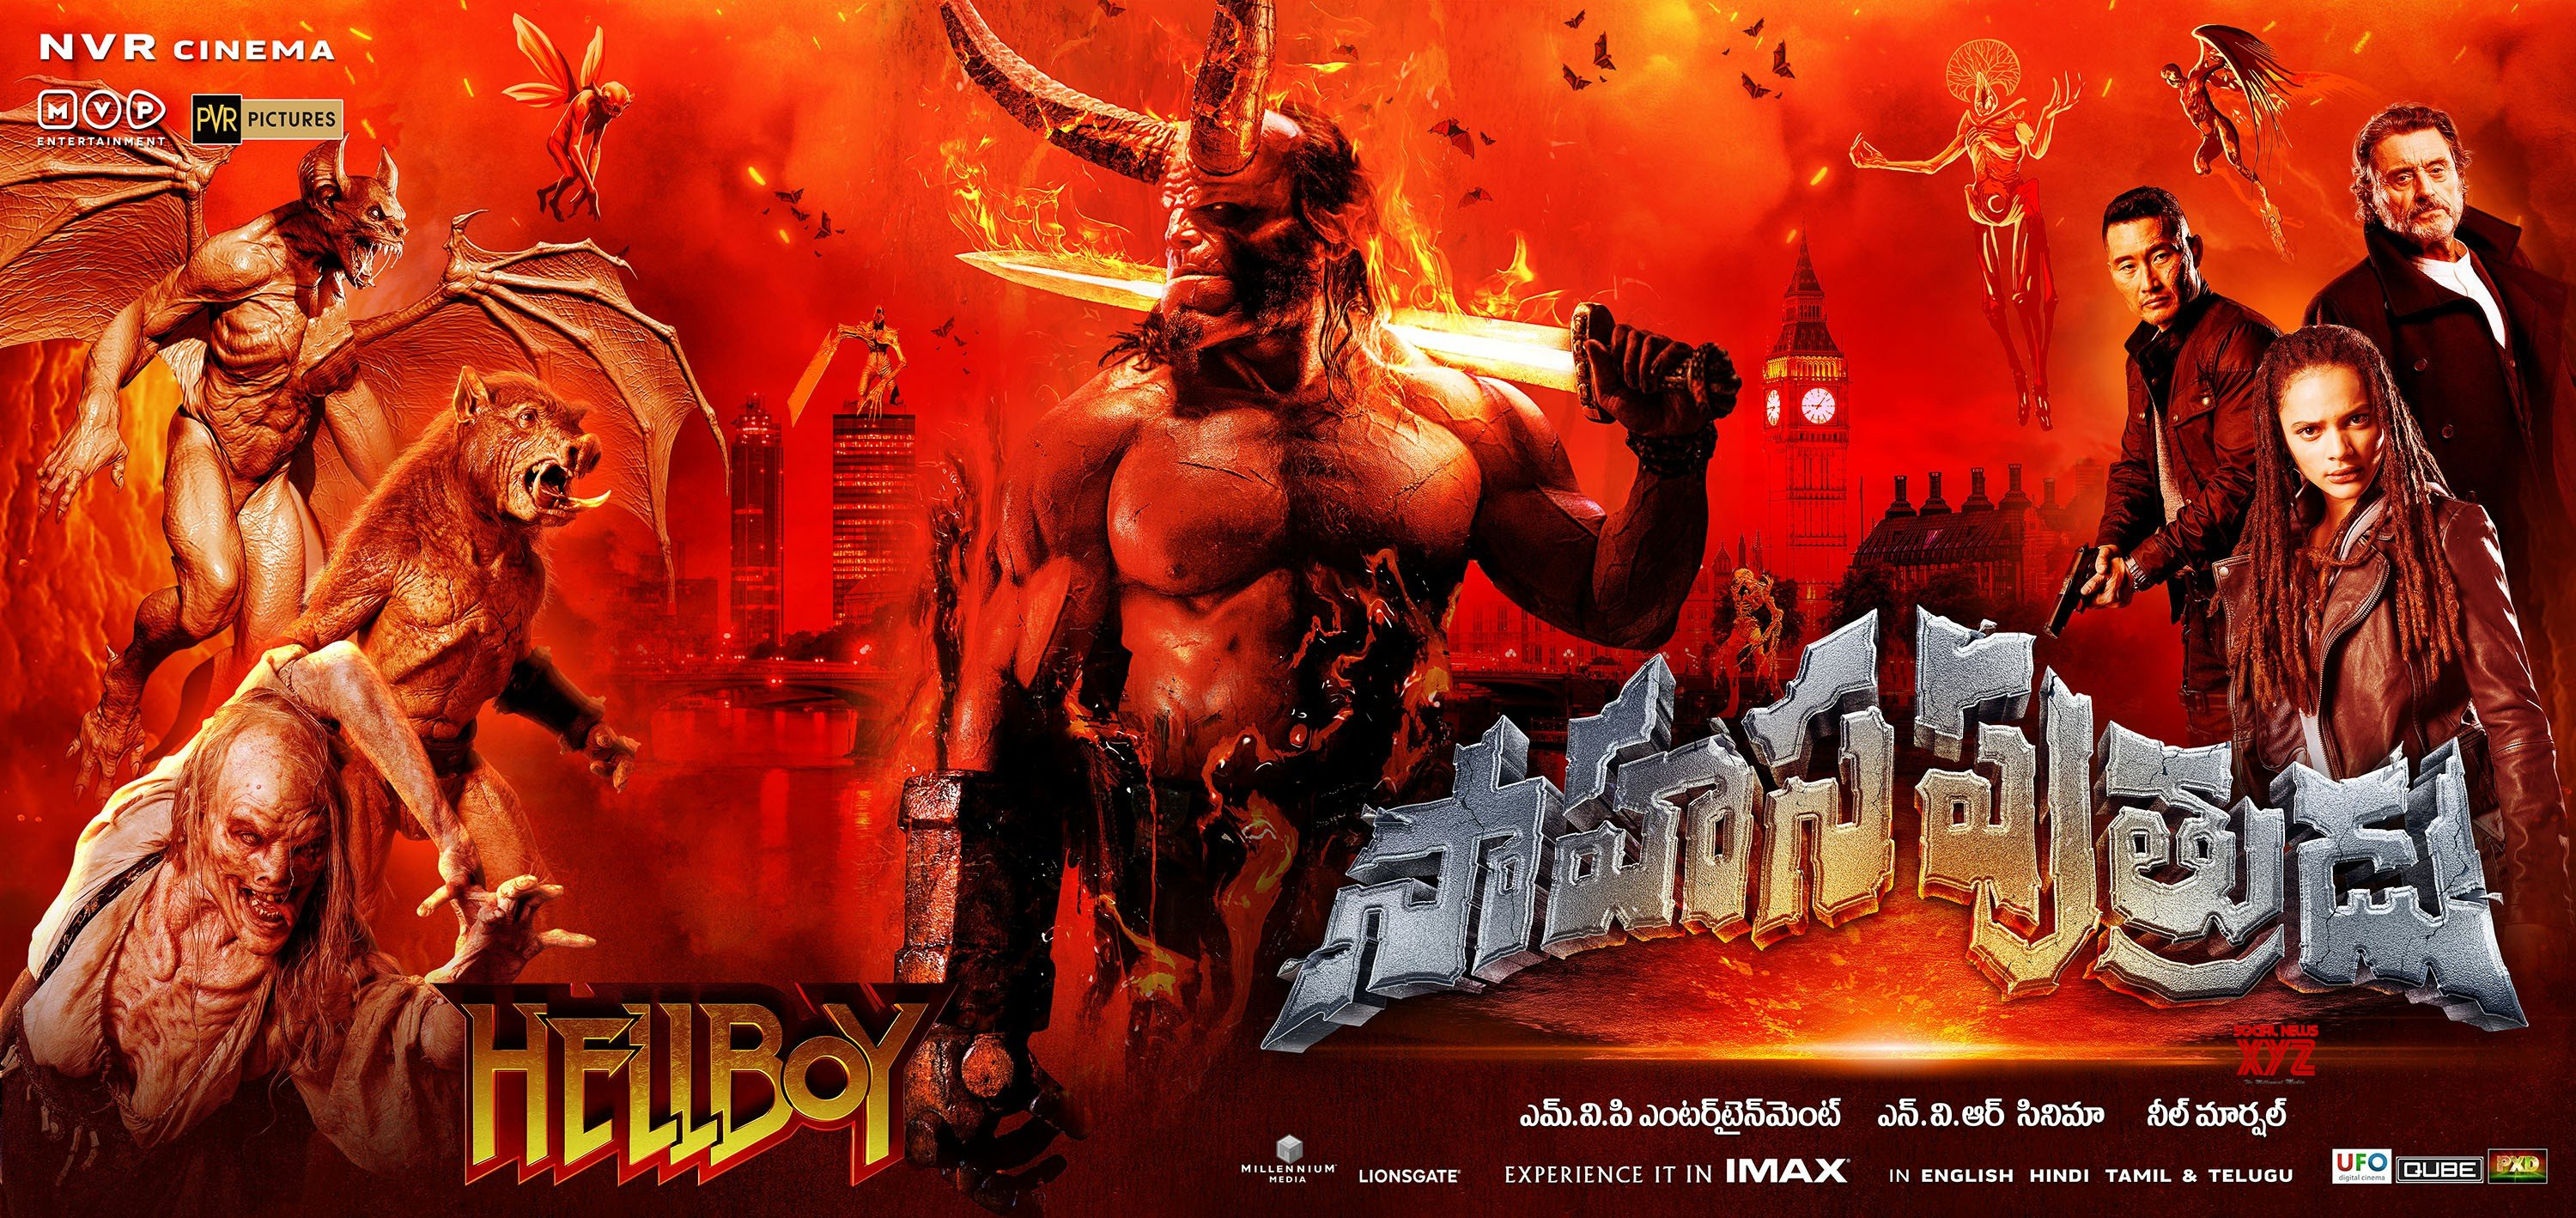 Movie Poster 2019: Hellboy Movie As Sahasaputrudu In Telugu HD Posters